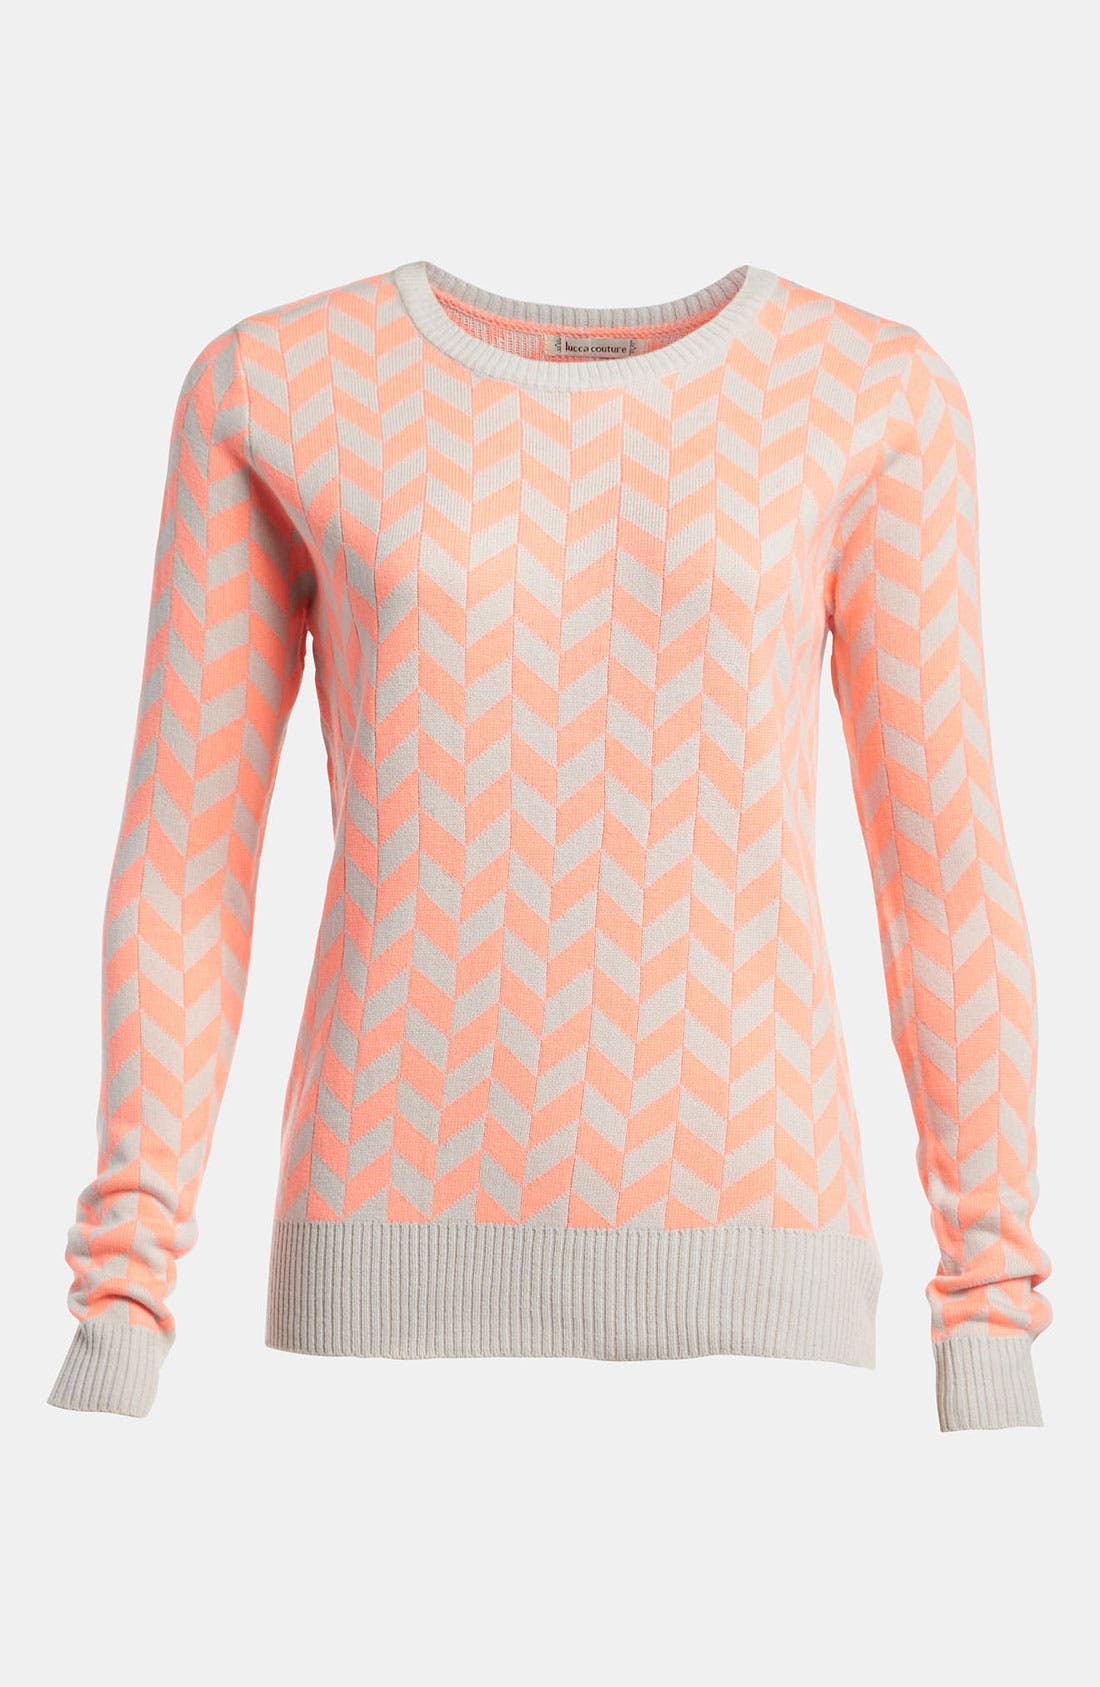 Main Image - Lucca Couture Zigzag Sweater